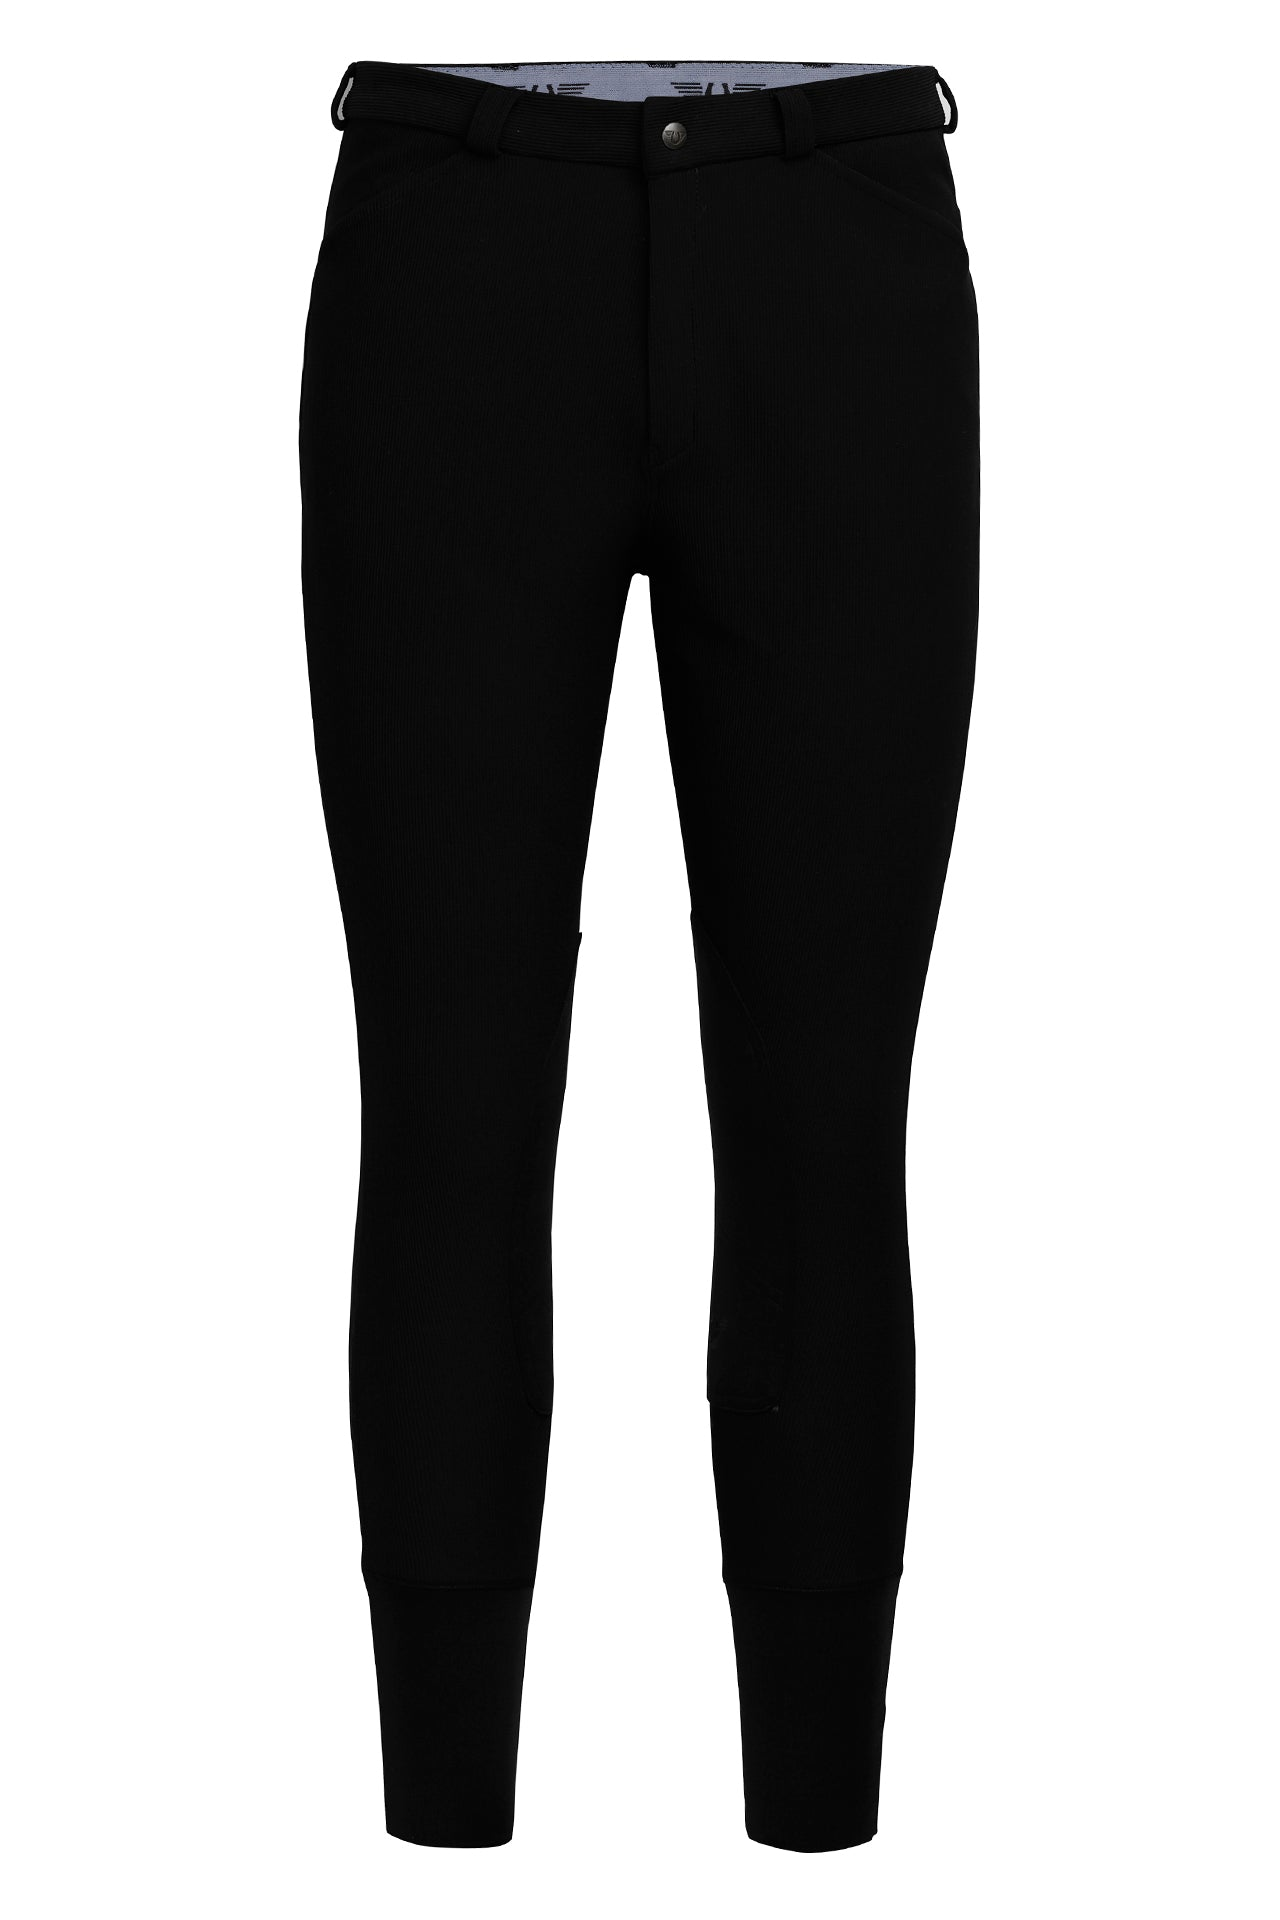 Tuffrider Men's Long Ribb Knee Patch Breeches - TuffRider - Breeches.com